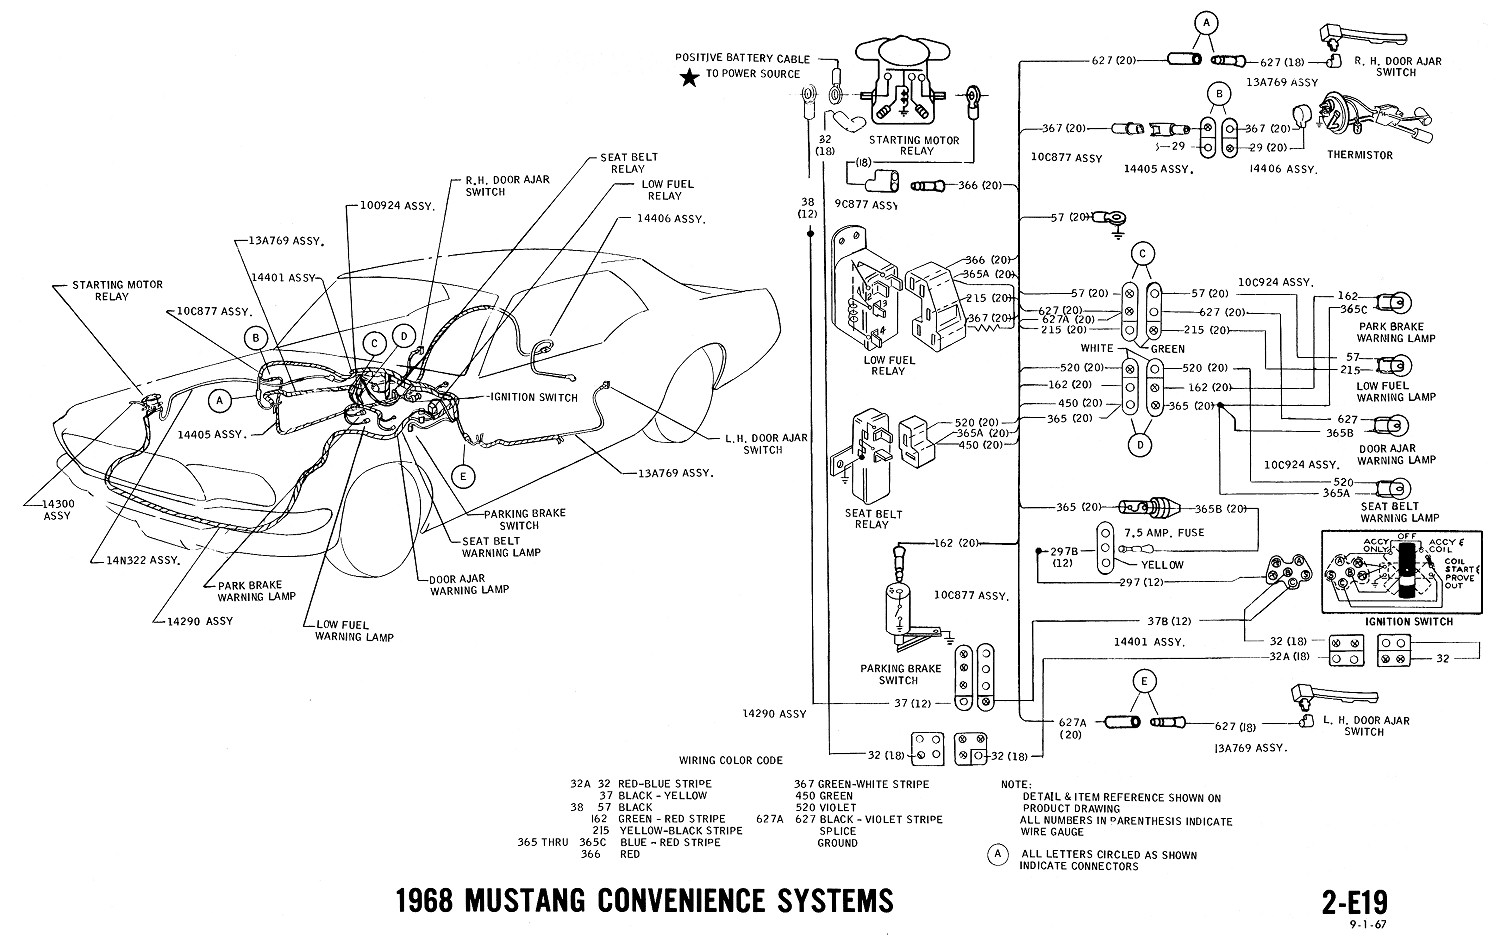 E19 1968 mustang wiring diagrams evolving software 68 mustang alternator wiring diagram at nearapp.co